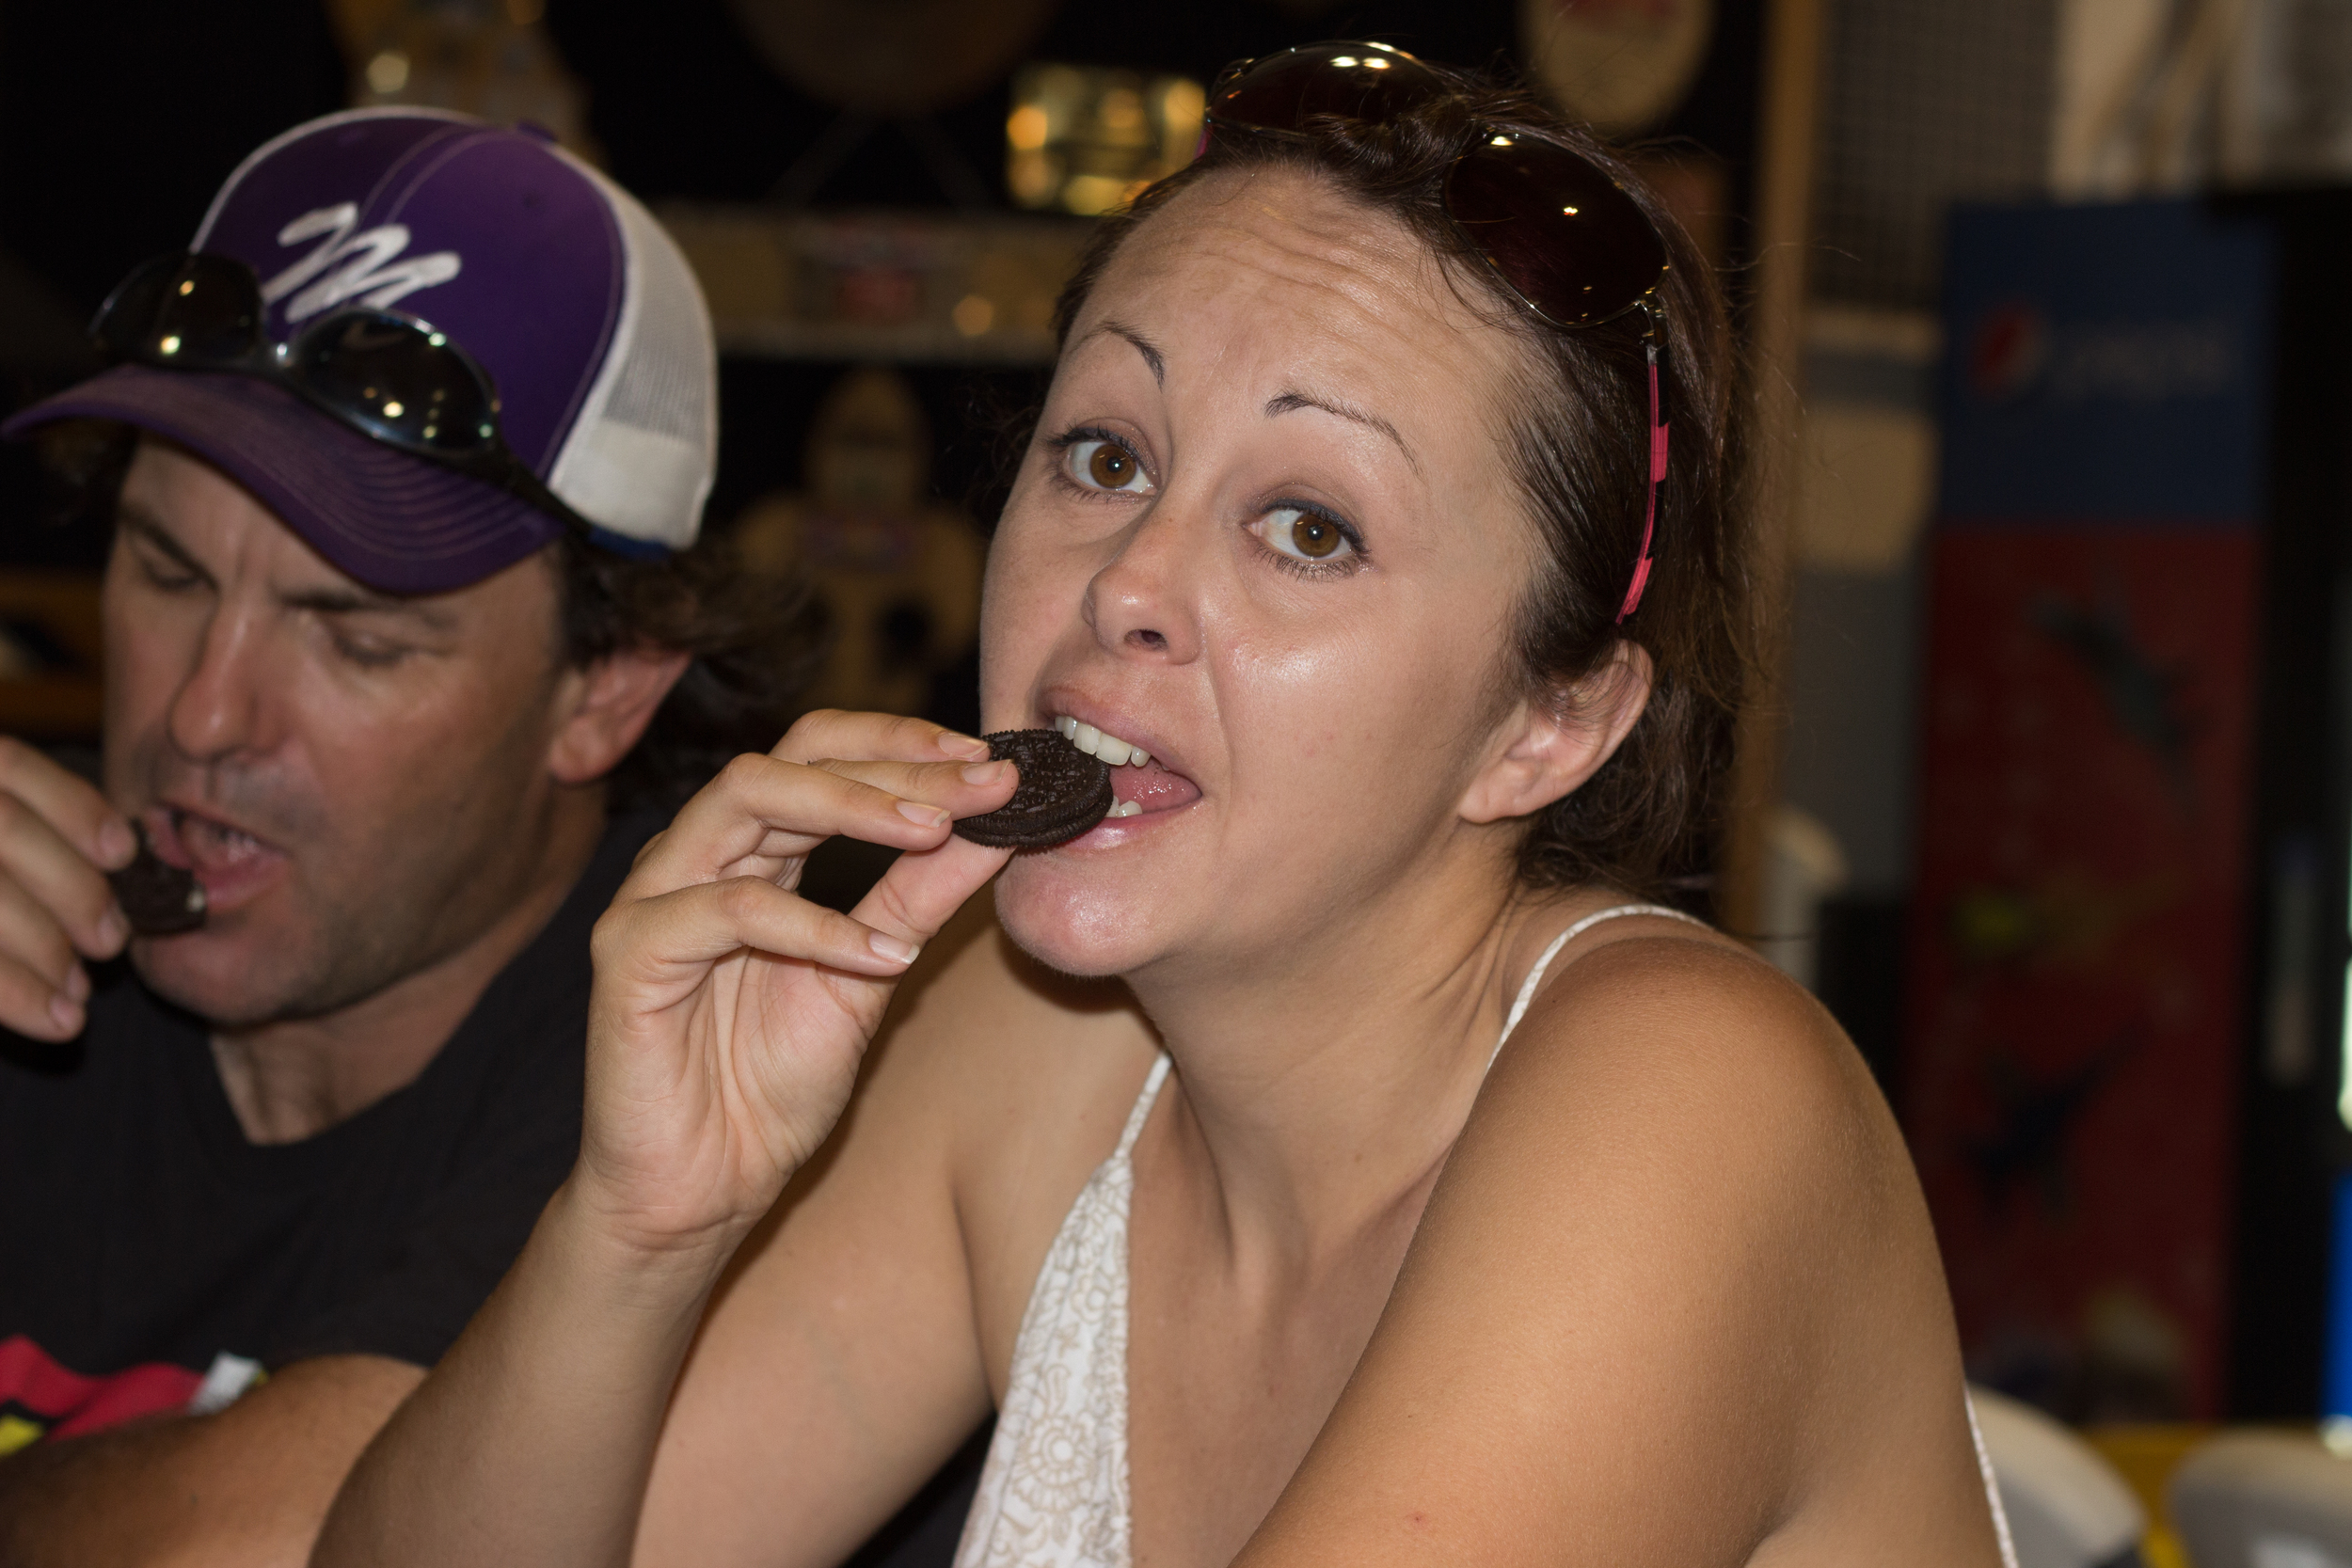 Candid photographs of me and my husband, John, eating Oreos while visiting the USS Lexington.